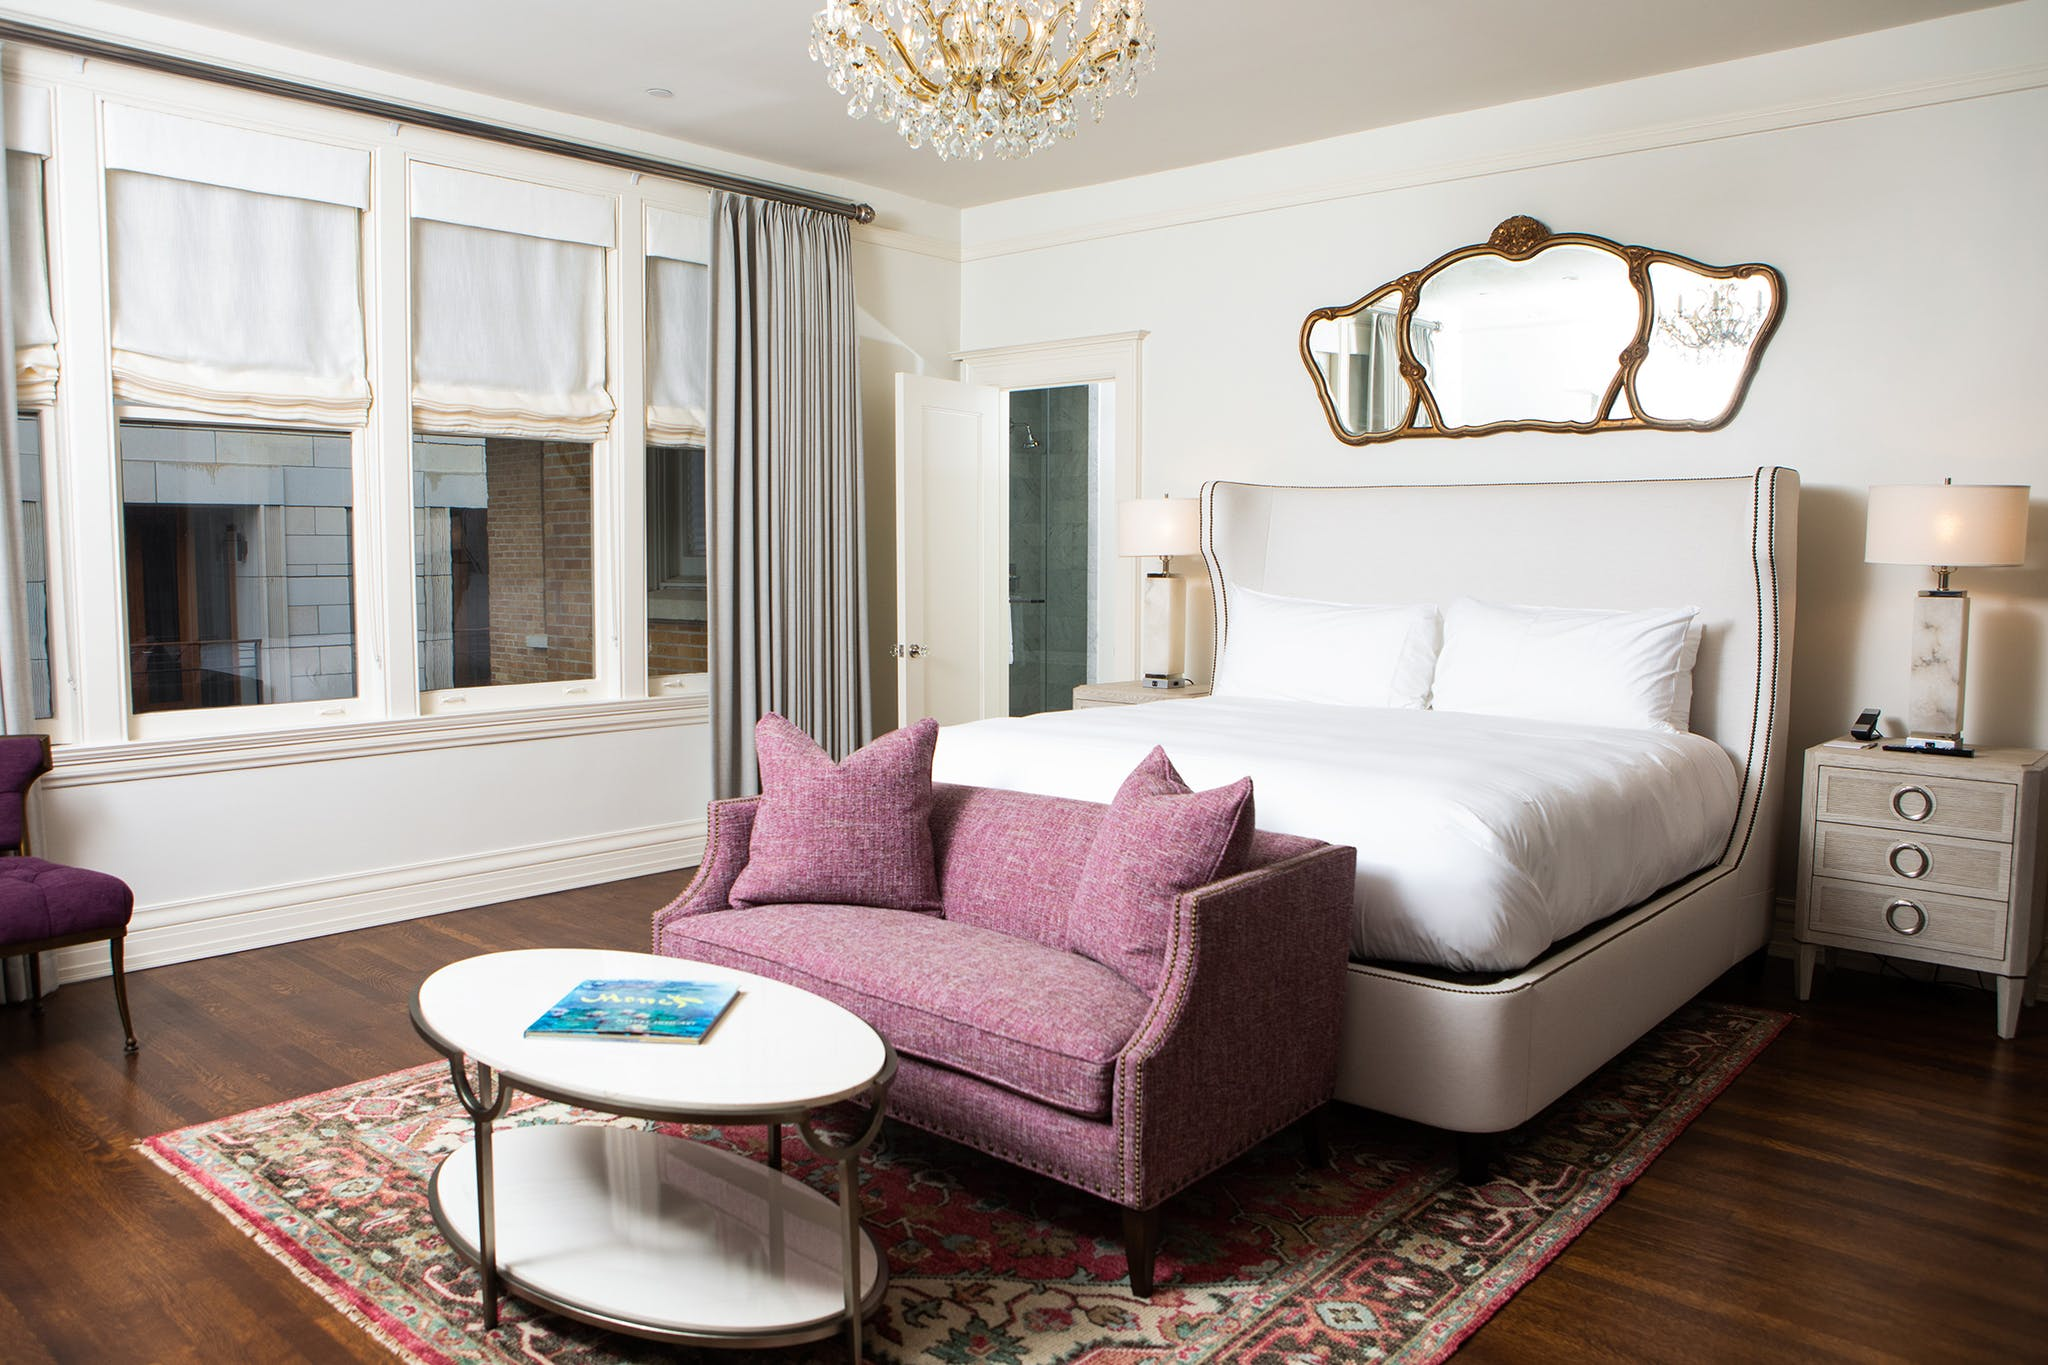 The rooms have been updated with tranquil furnishings accented with playful jewel tones.